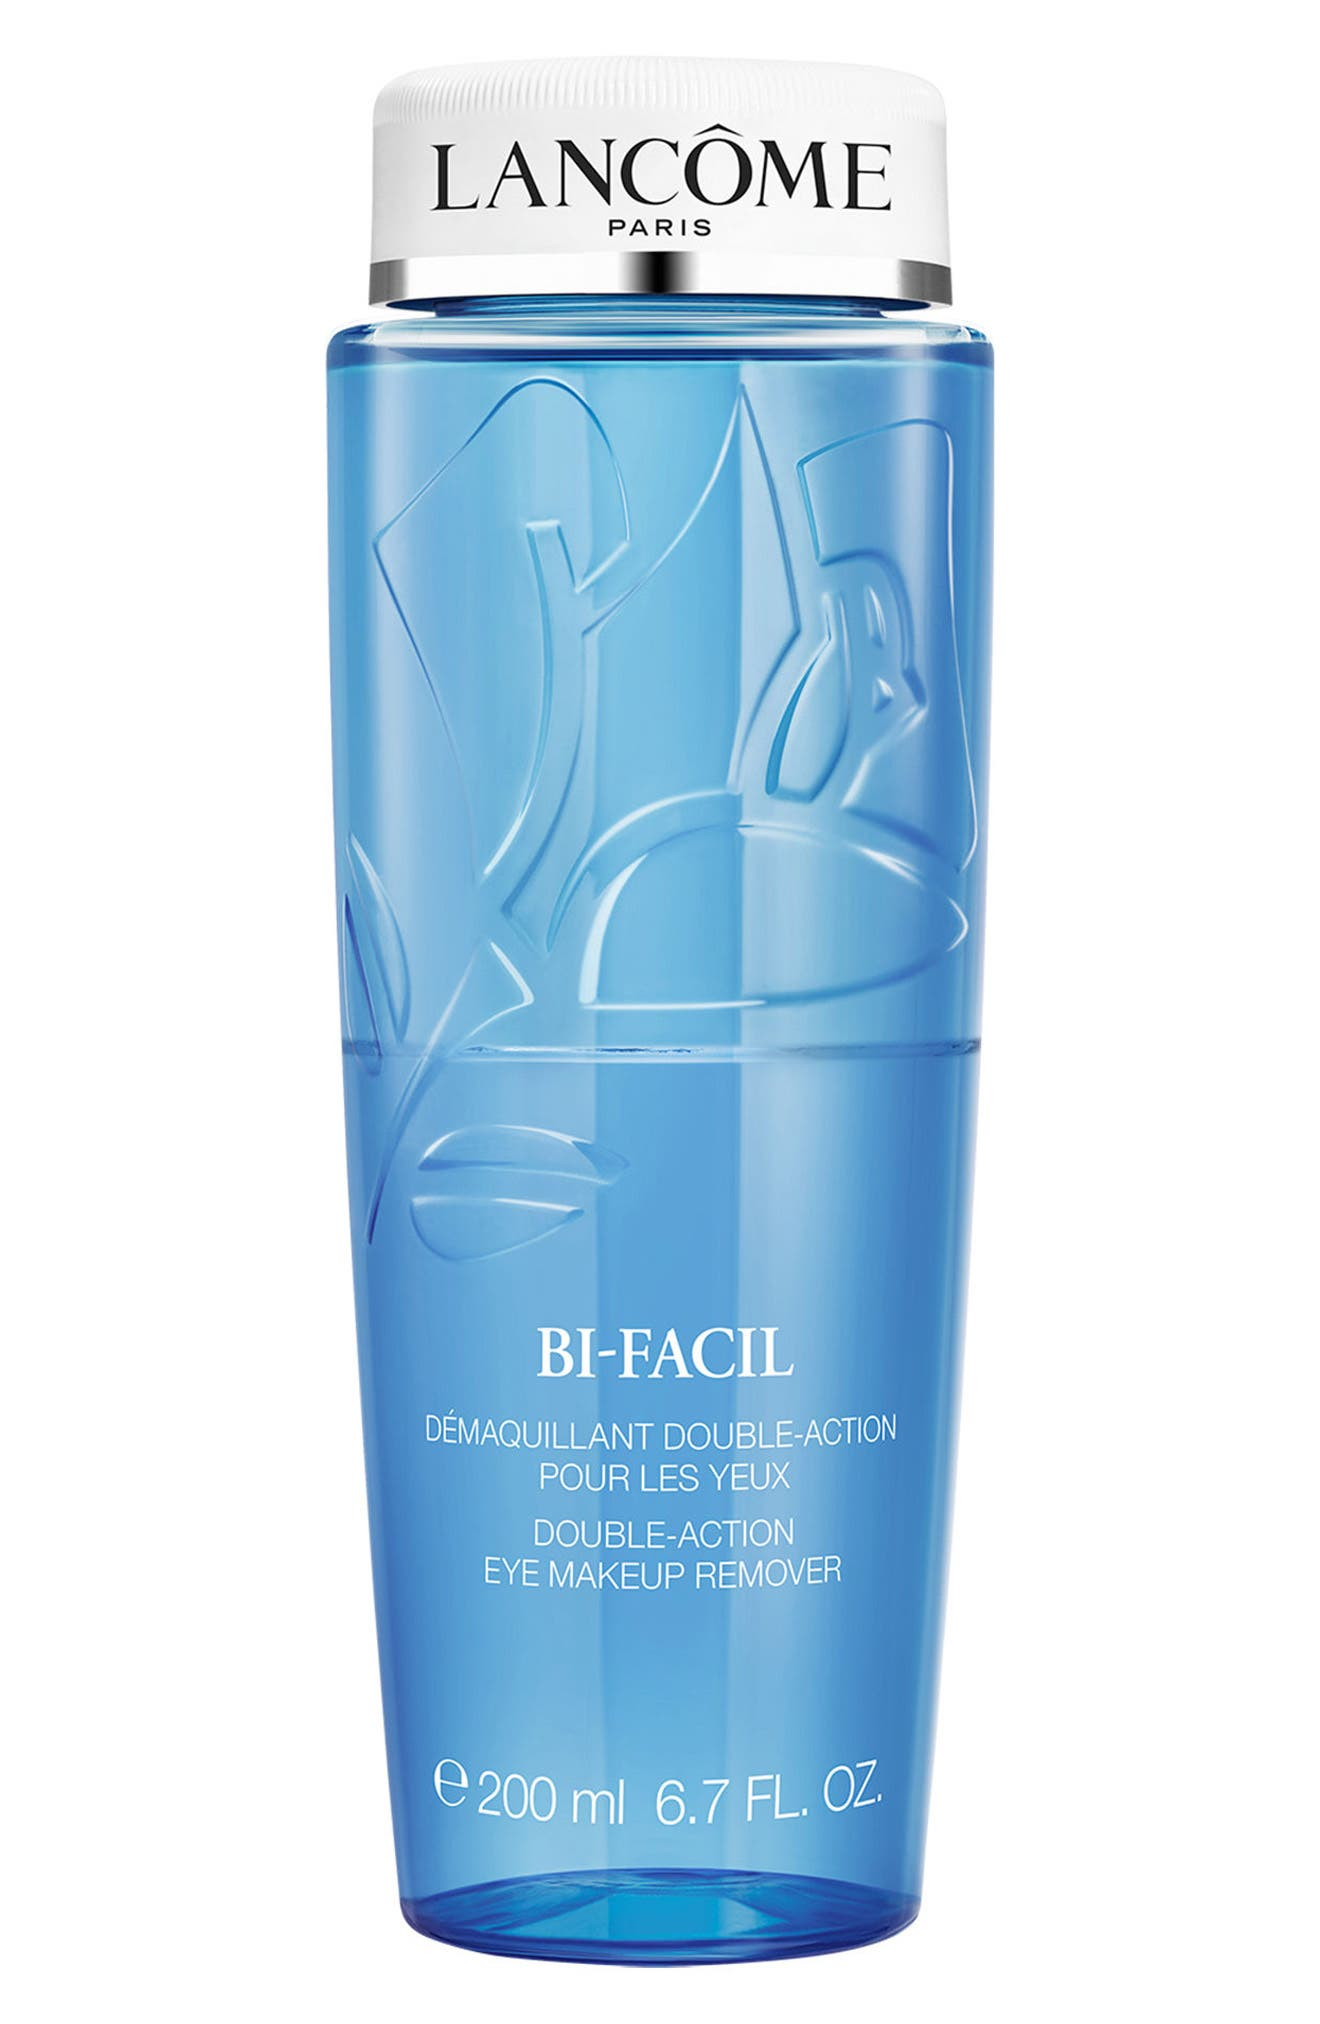 Bestsellers: Best Skin Care Products & Moisturizers | Nordstrom